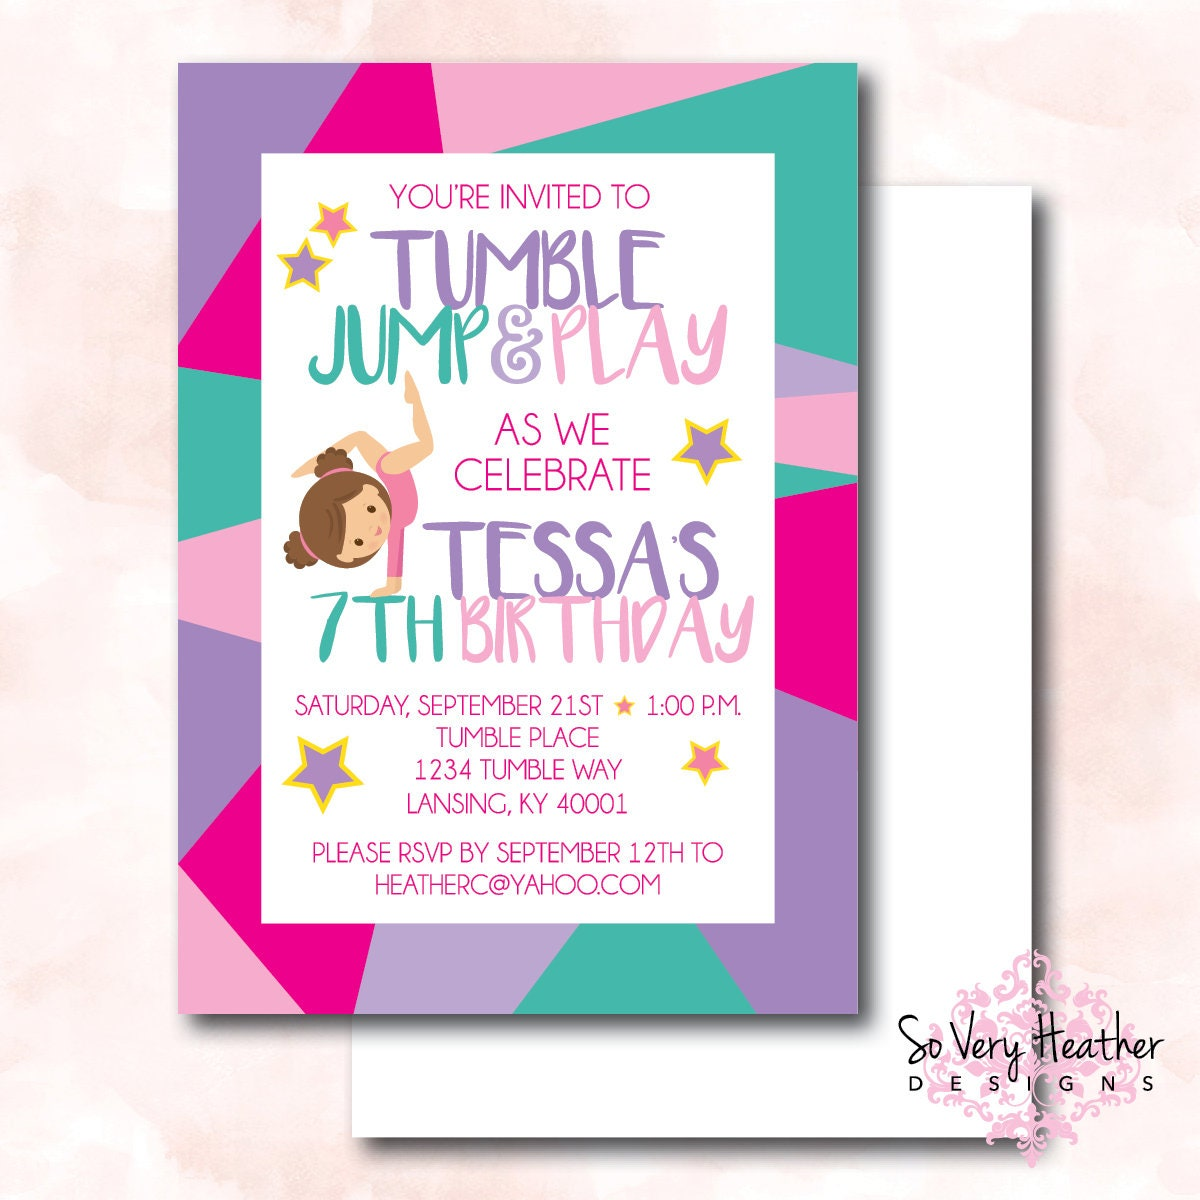 Tumble jump and play birthday party invitation and thank you cards tumble jump and play birthday party invitation and thank you cards digital file or printed stopboris Images